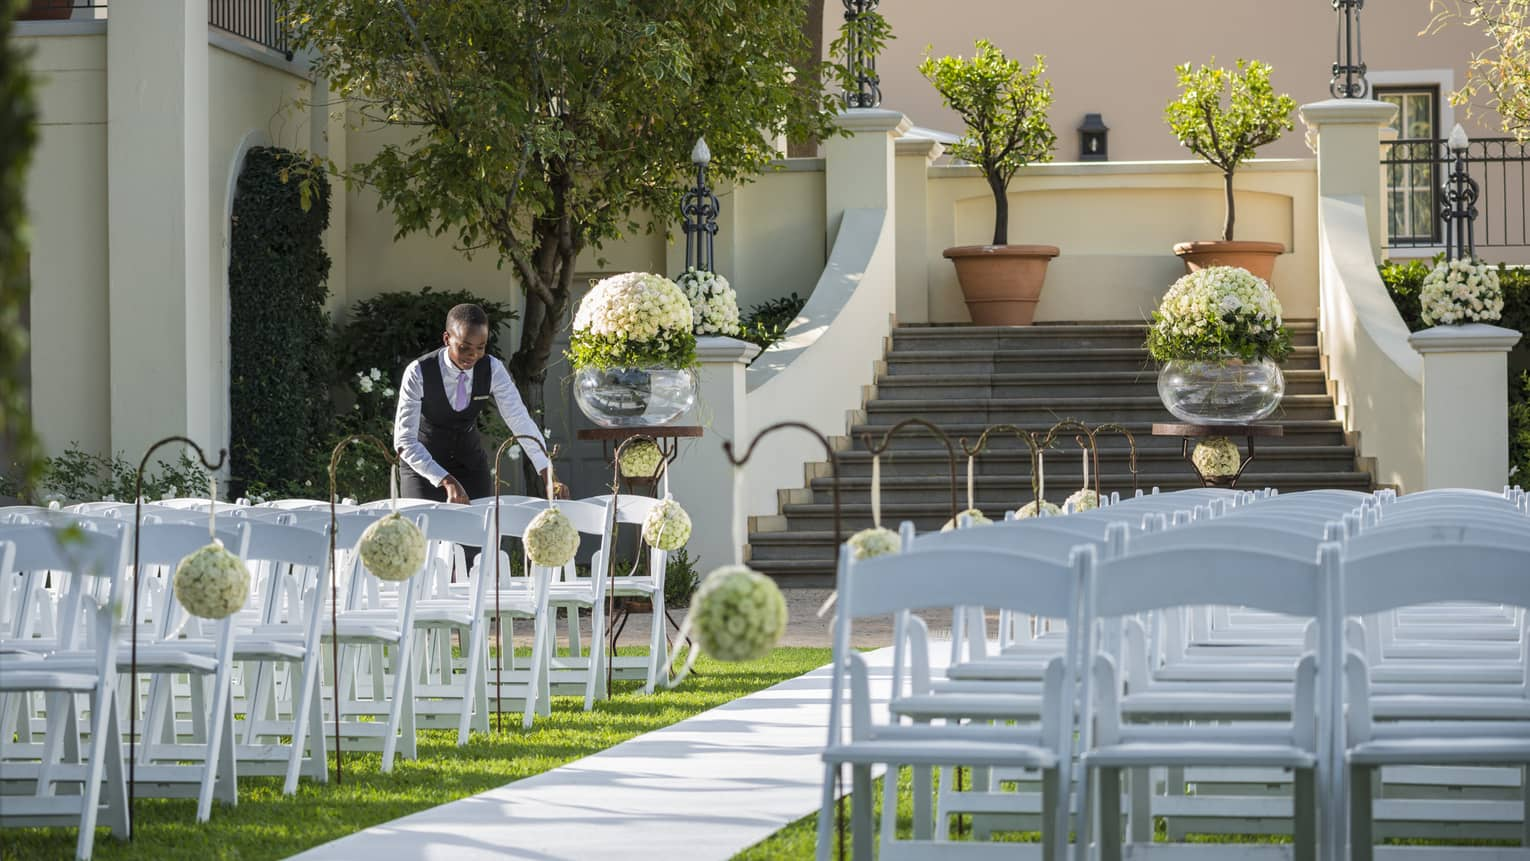 Hotel staff arranges white chairs on garden lawn for wedding service